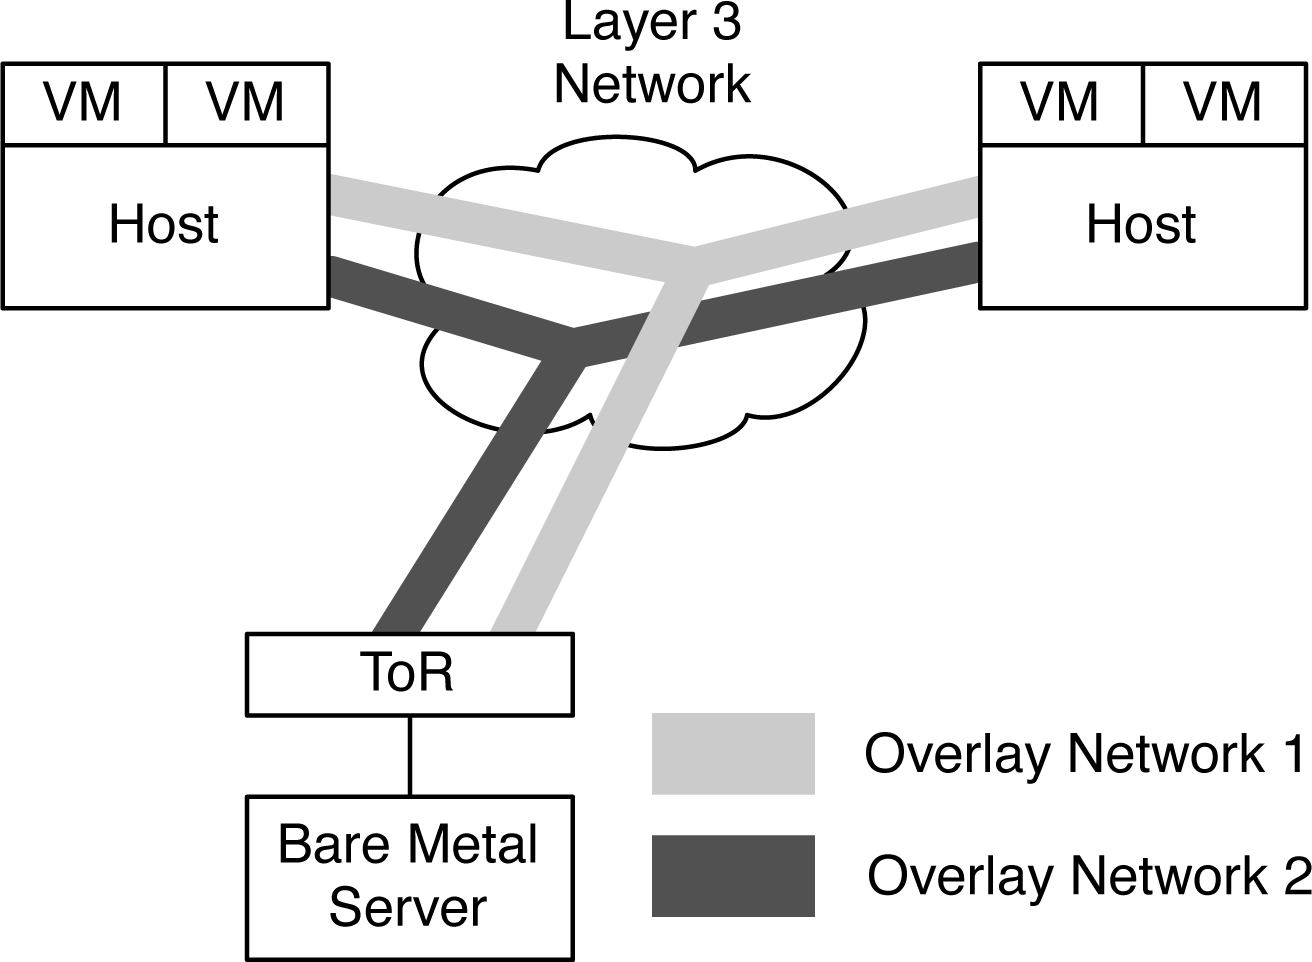 Overlay networking